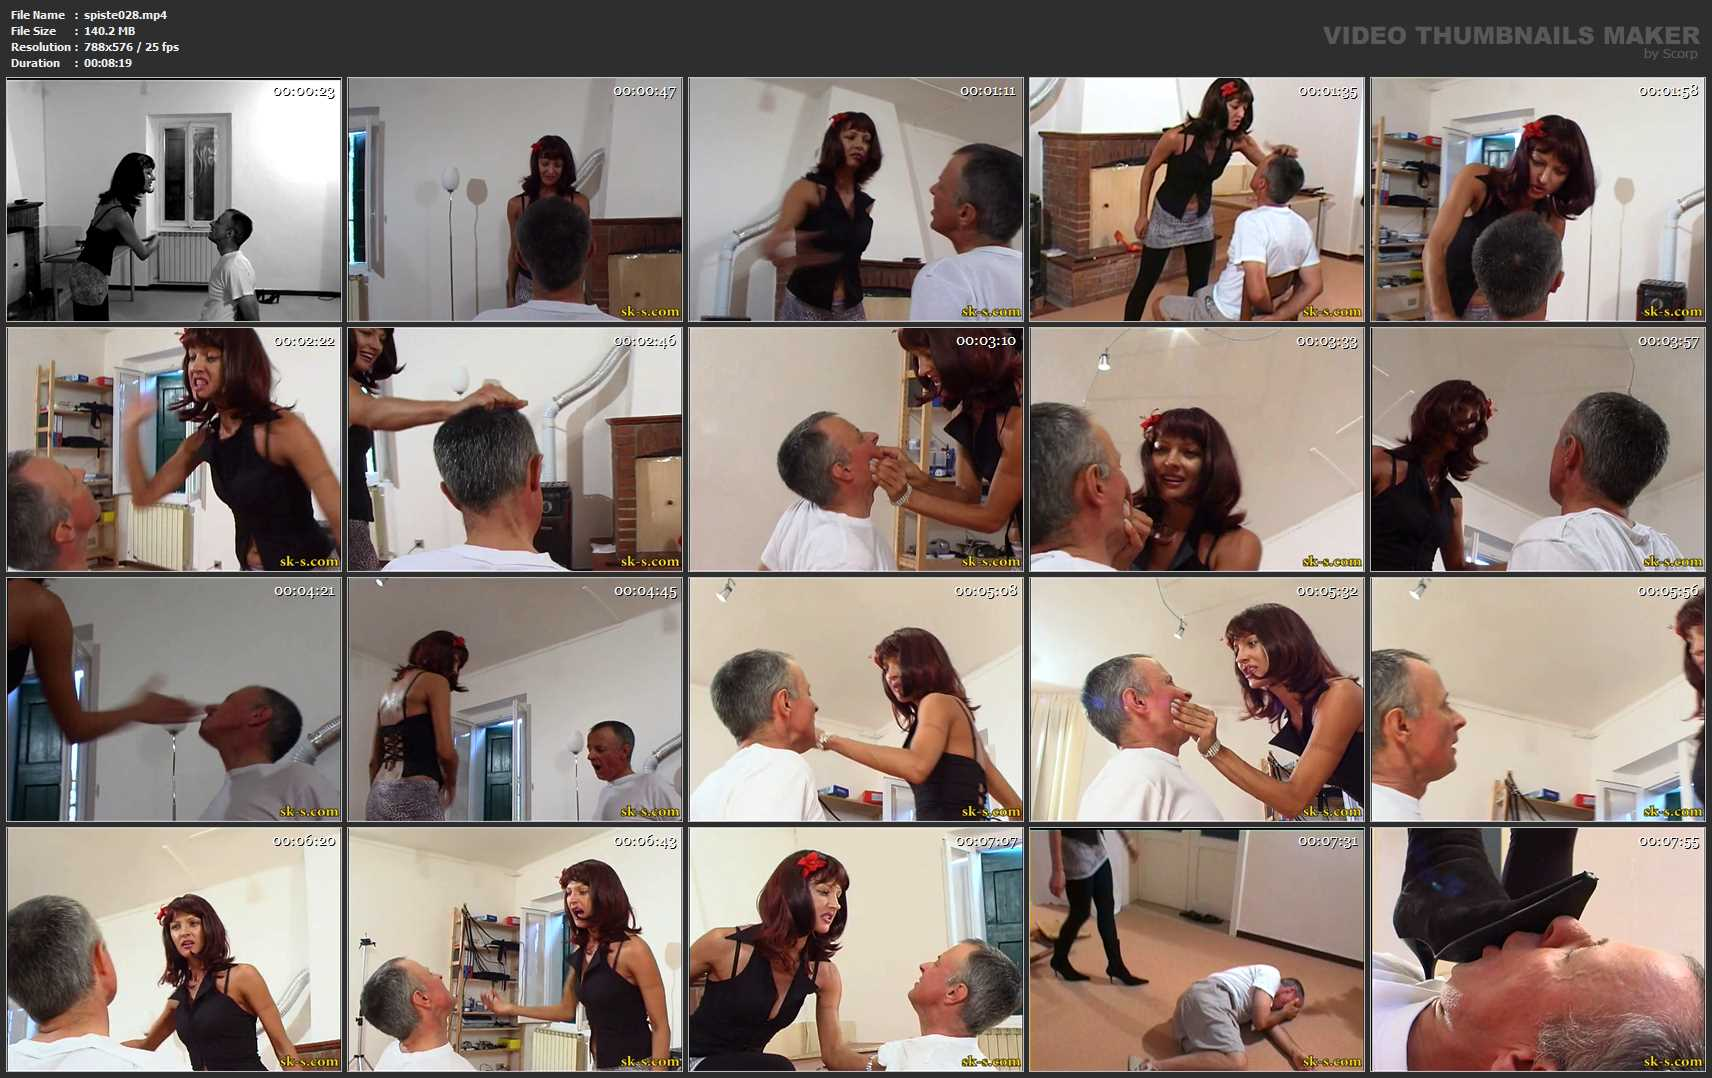 The Russian Model: Arrogant Face Slapping - SPIKEYSTEP VIDEO PRODUCTIONS - SD/576p/MP4